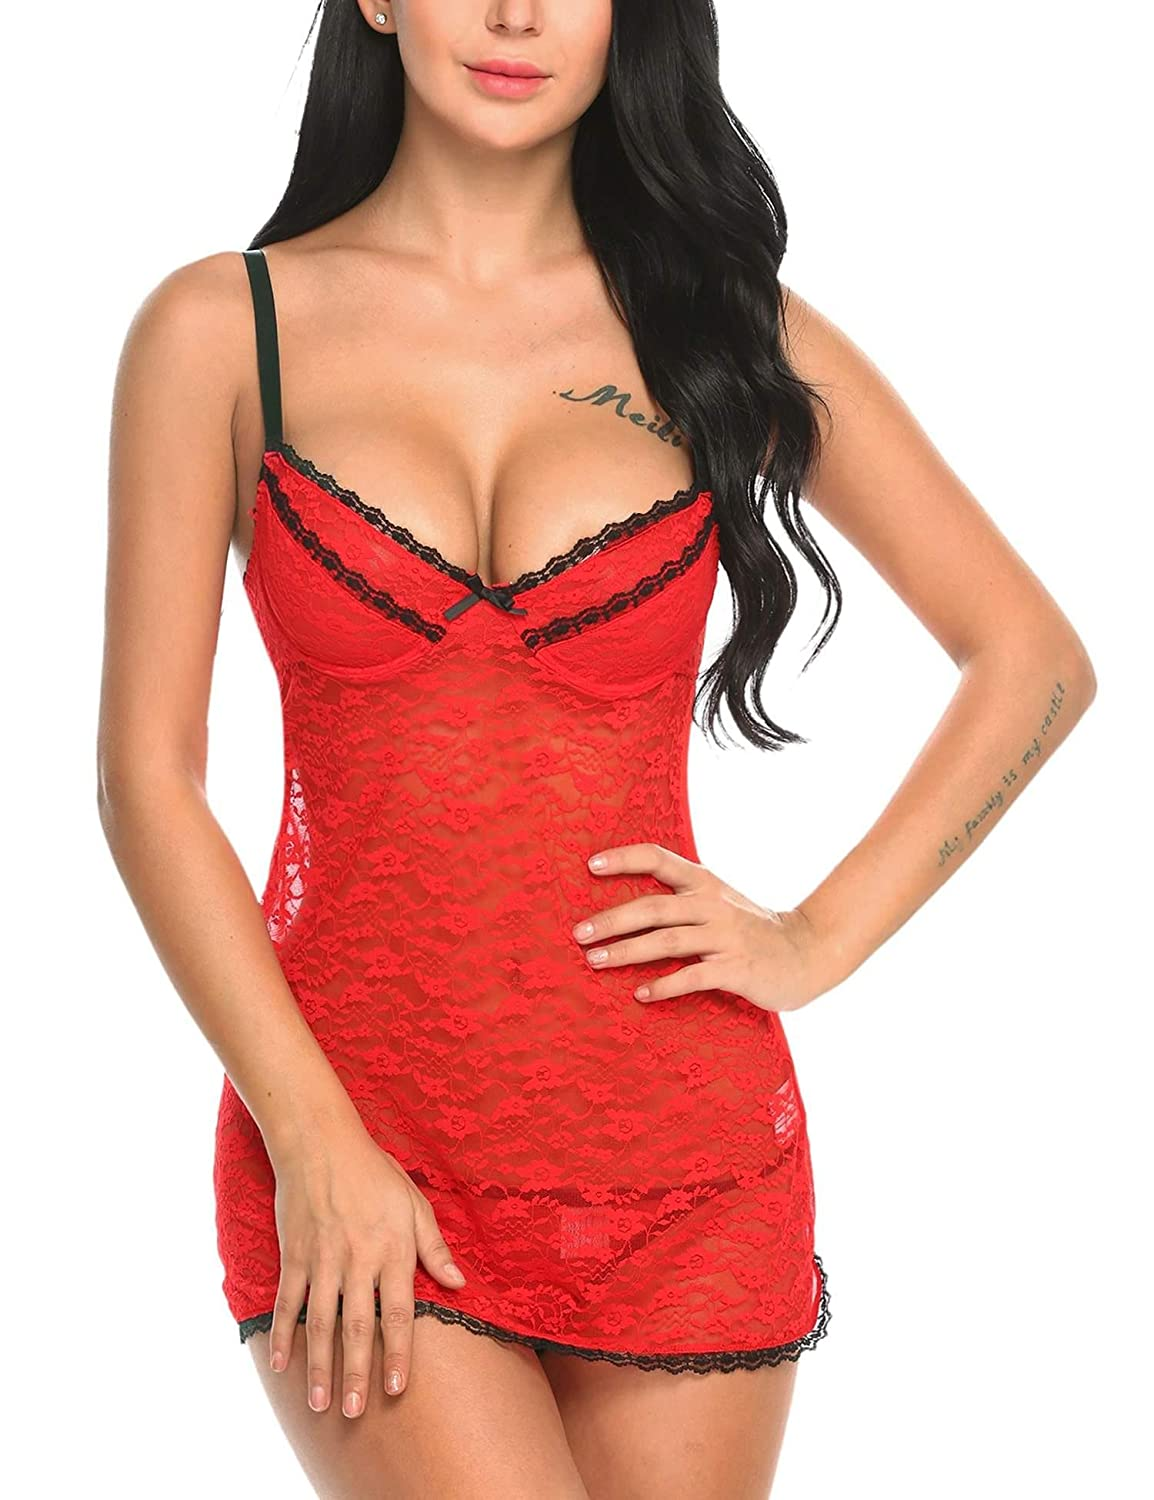 3adf52397626 Sexy Underwire Floral Lace Lingerie Sheer Night Gown with G-String Thong  Underwire lace bust, elastic shoulder straps, with open back